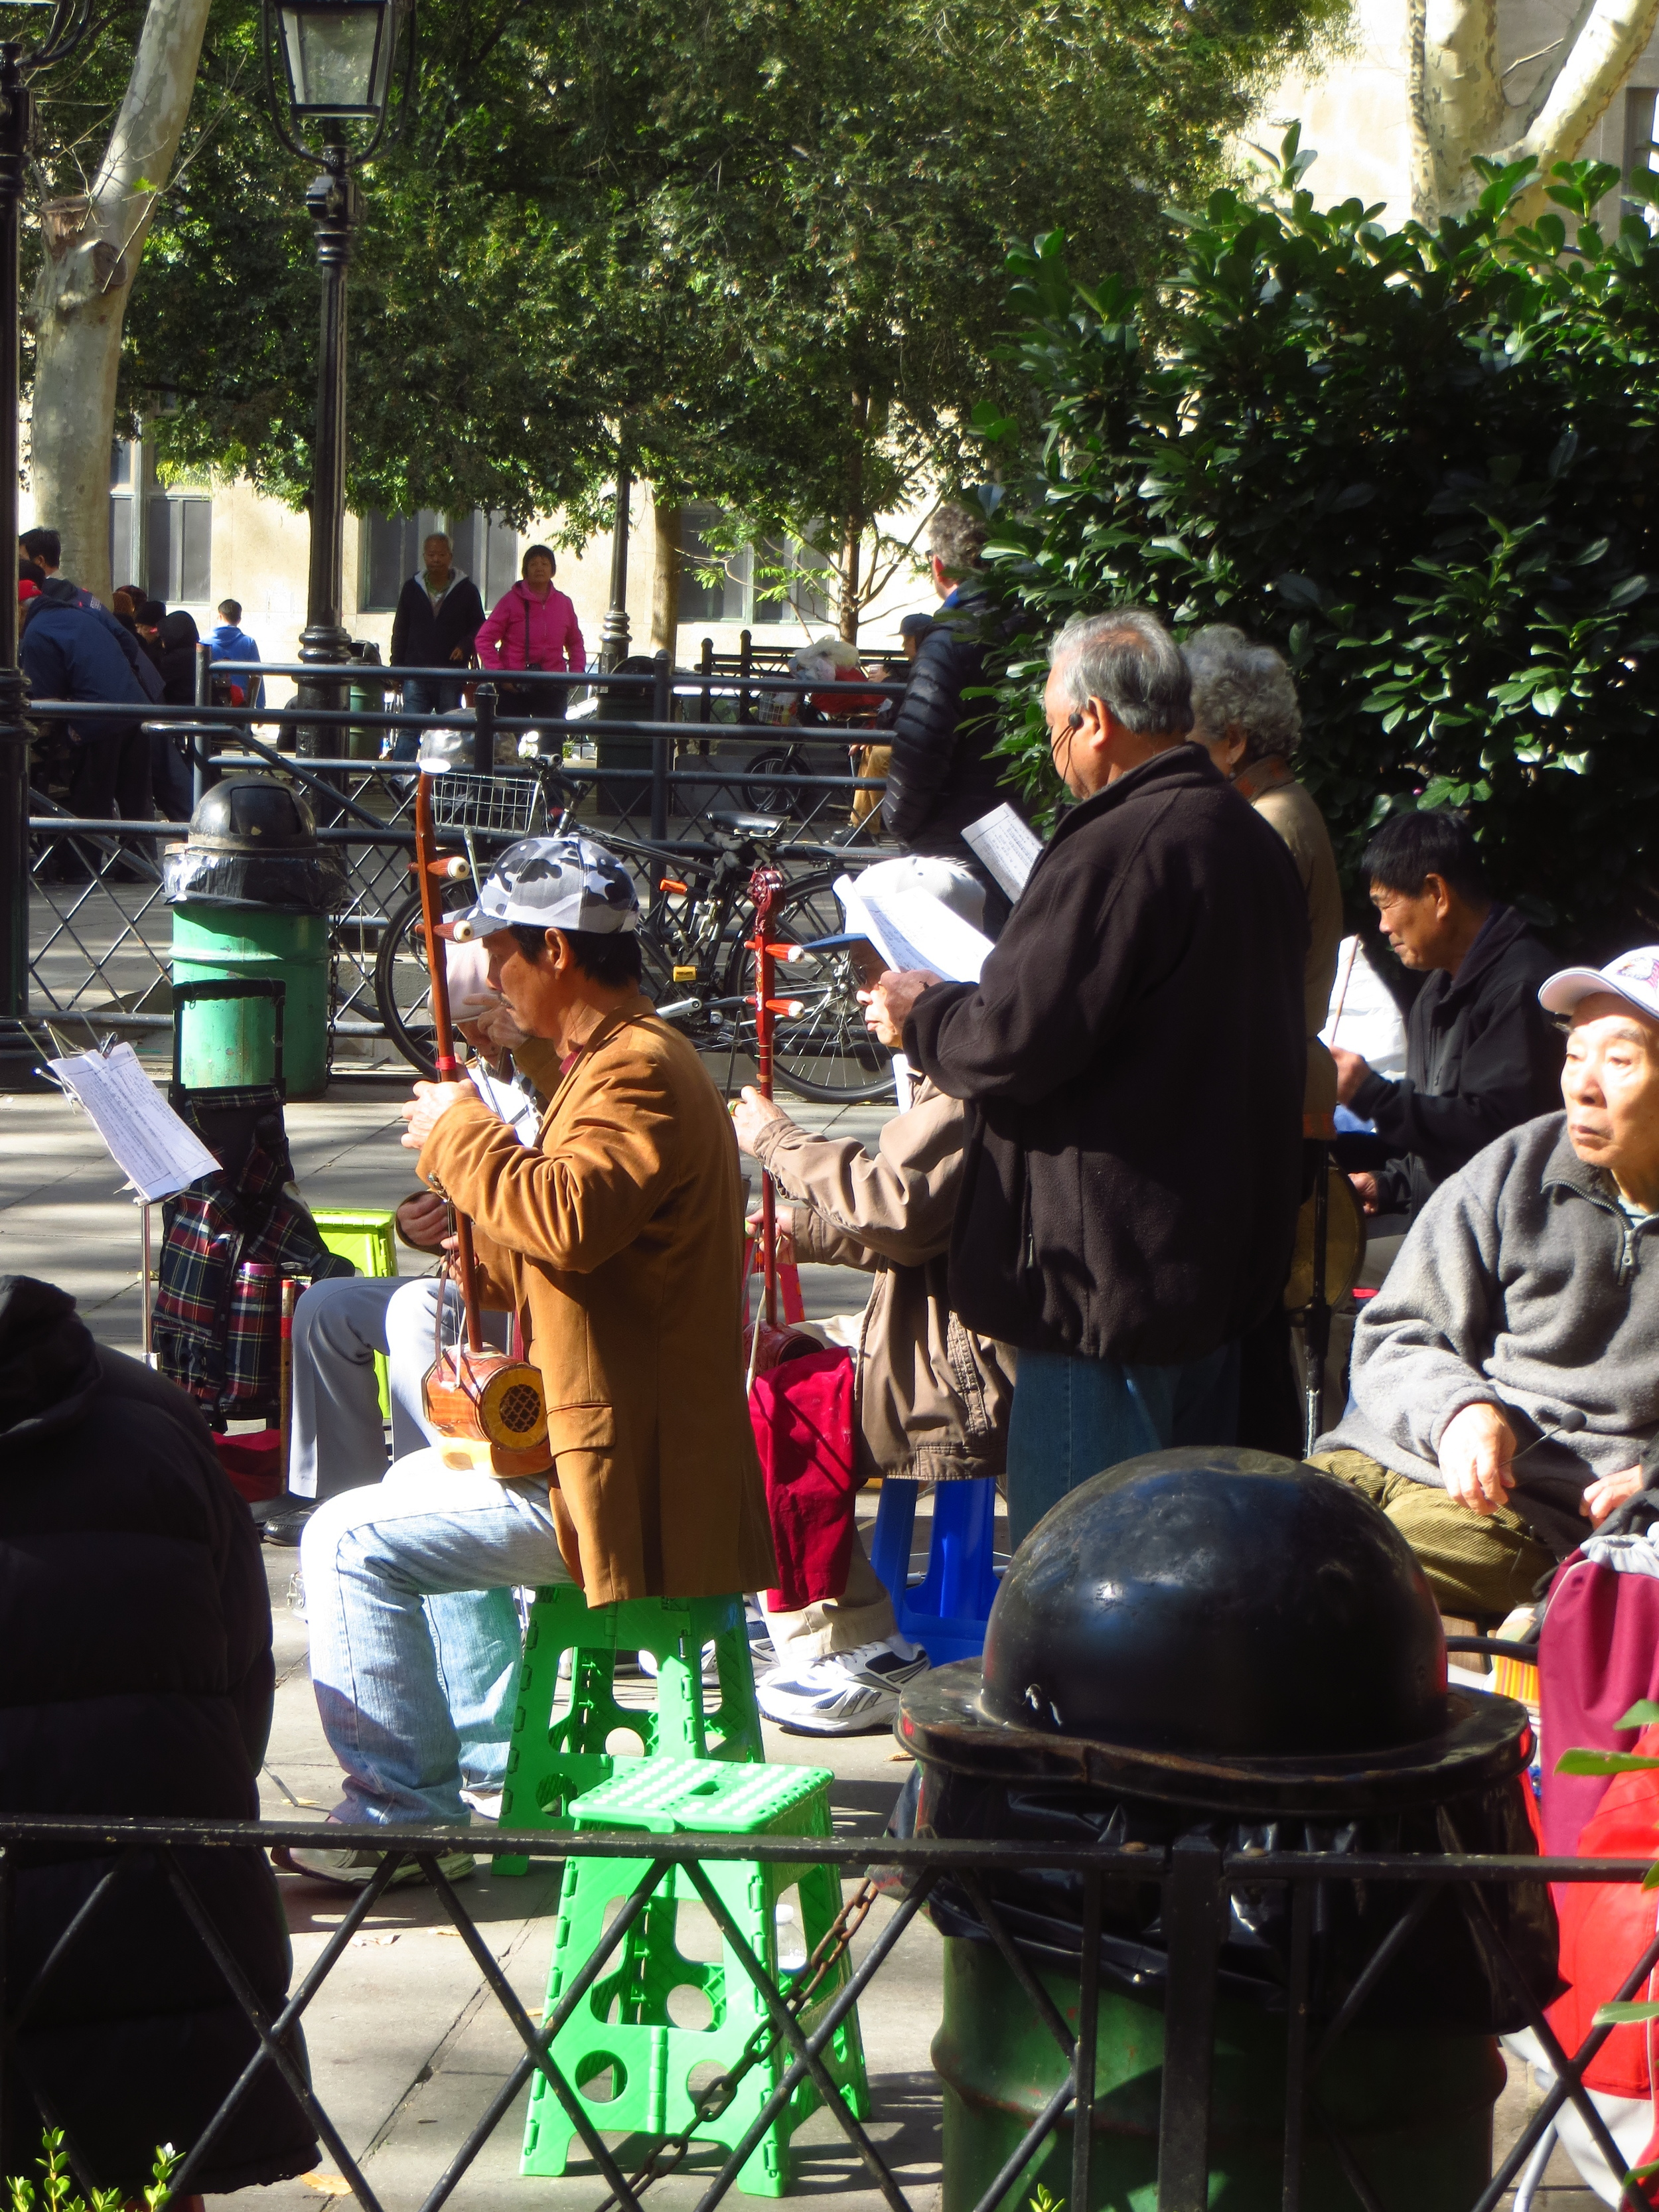 Traditional Chinese music ensemble (one of many in the park that day)